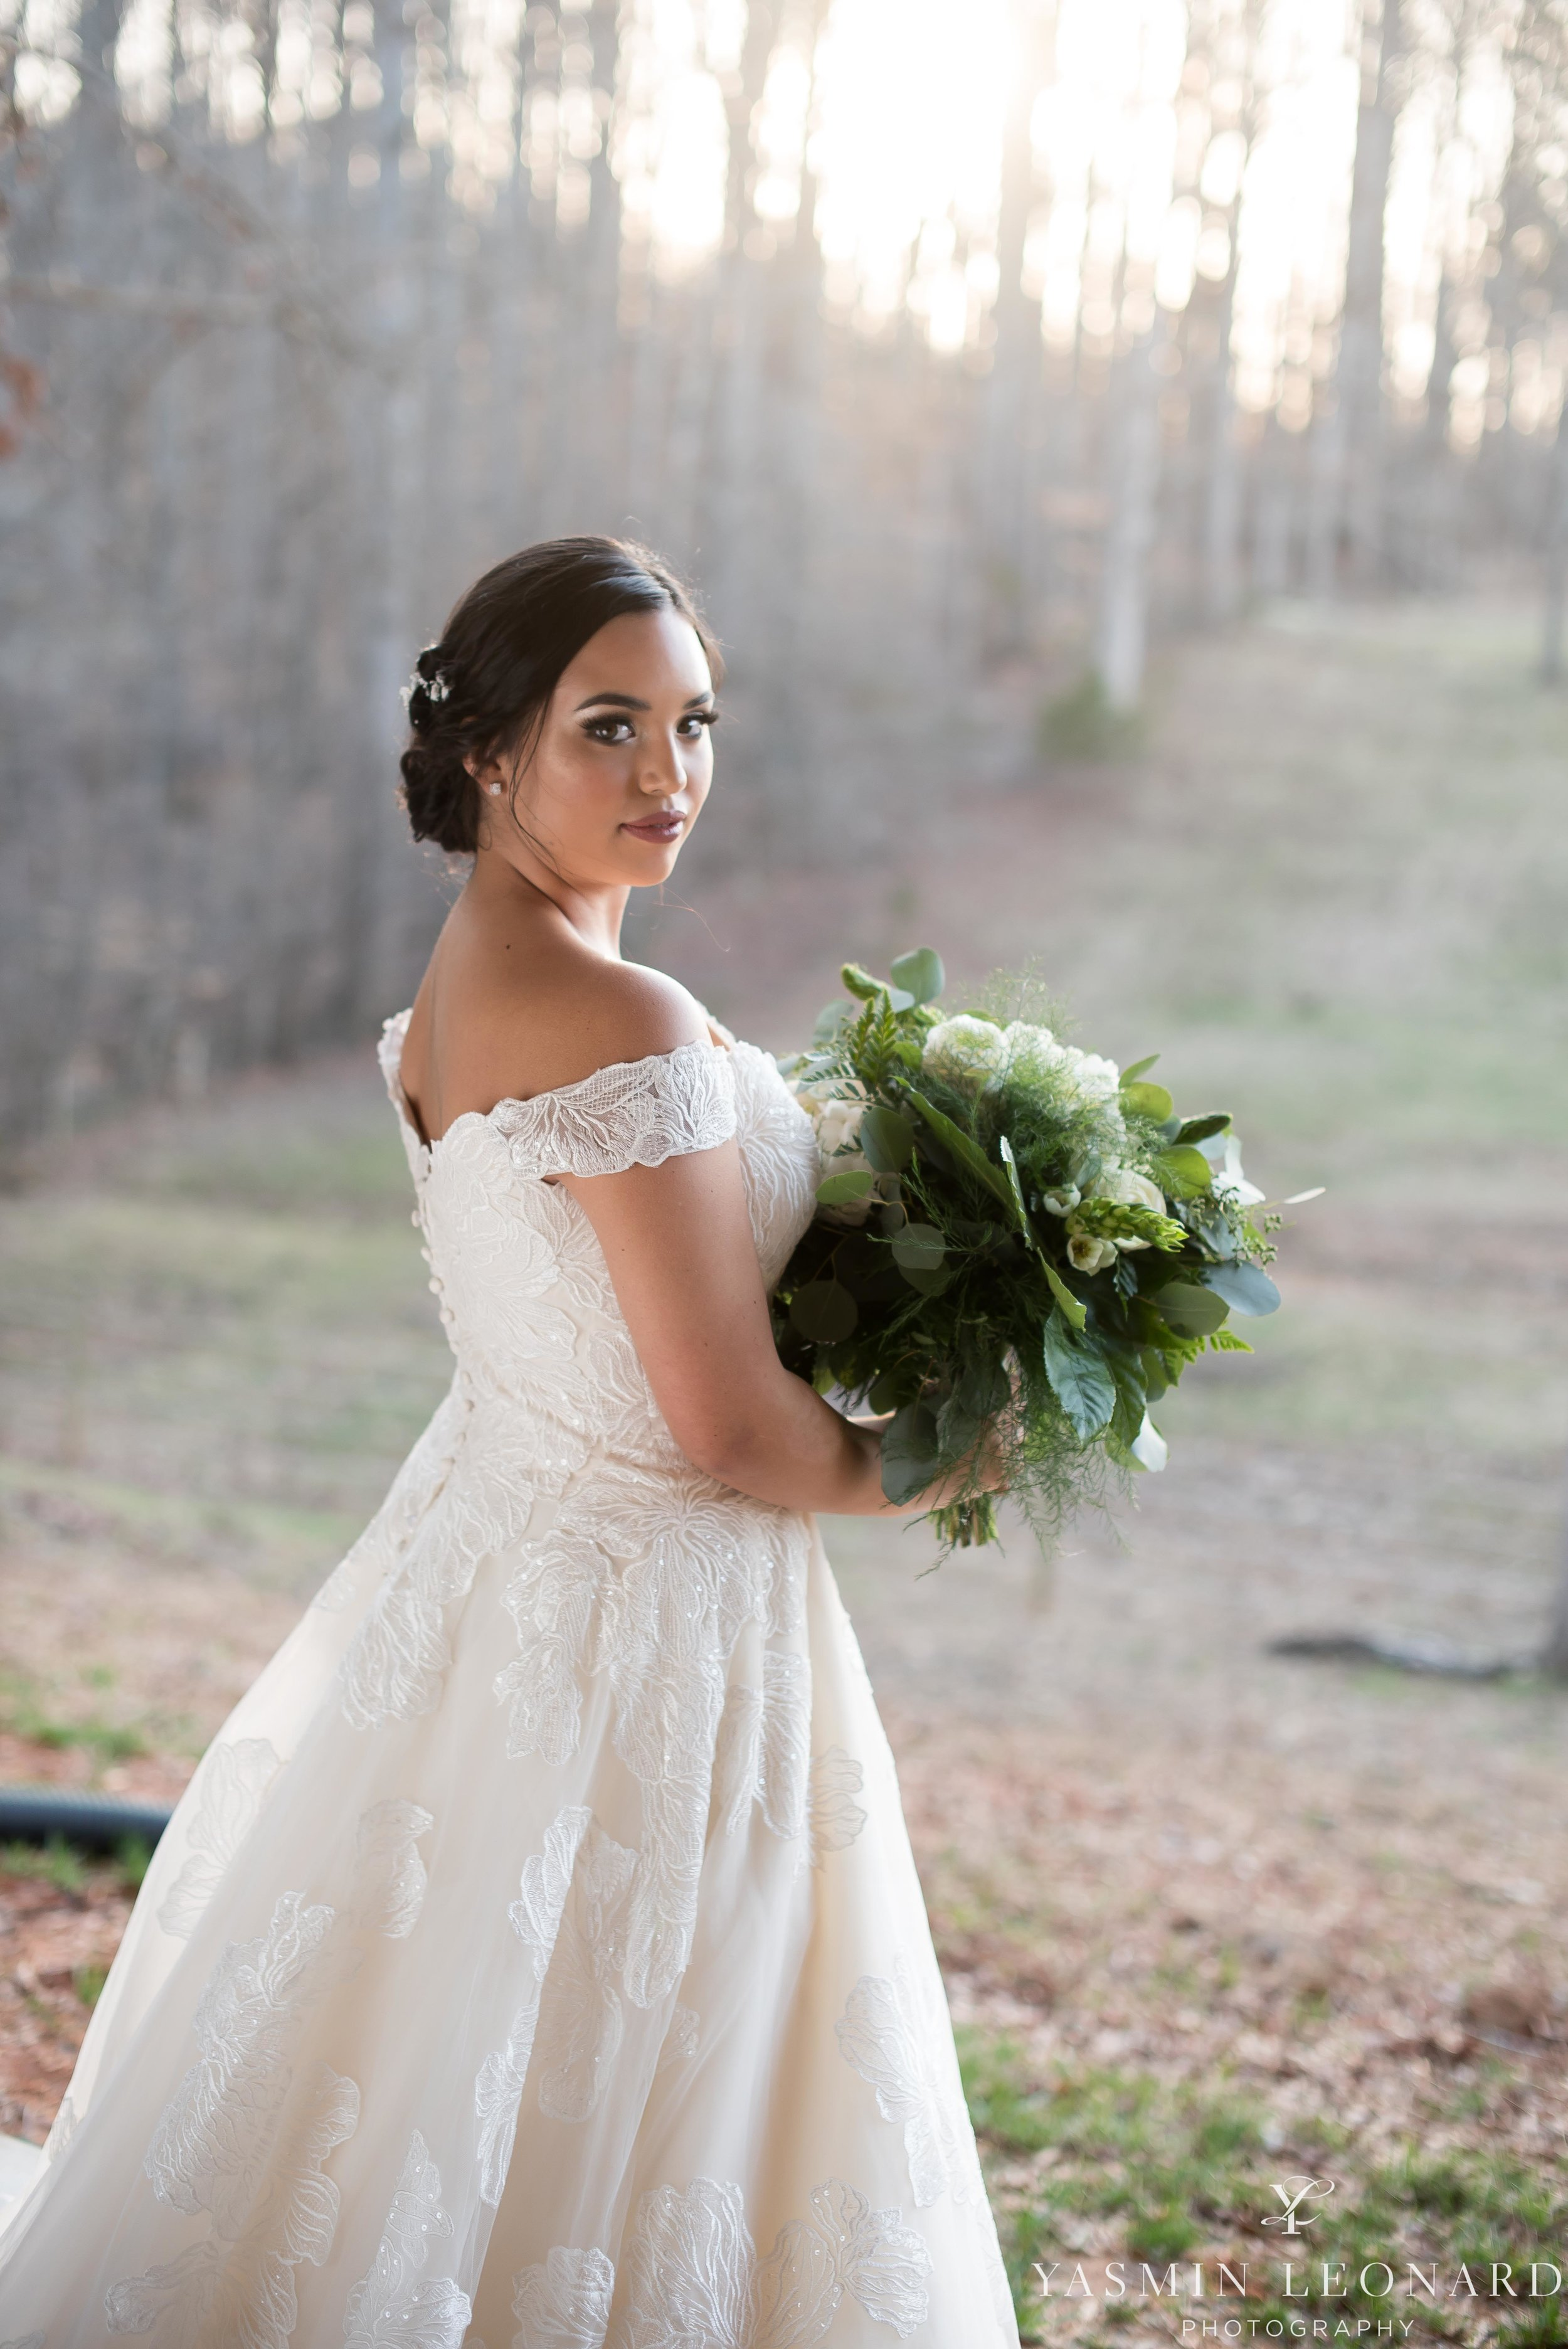 Old Homeplace Vineyard - Grits and Glitter - Dashing Dames Bridal Boutique - Just Priceless - Yasmin Leonard Photography - High Point Weddings - NC Weddings - NC Wedding Venues - High Point Jewelers - NC Wines - NC Vineyards - Cupcake Cuties-85.jpg